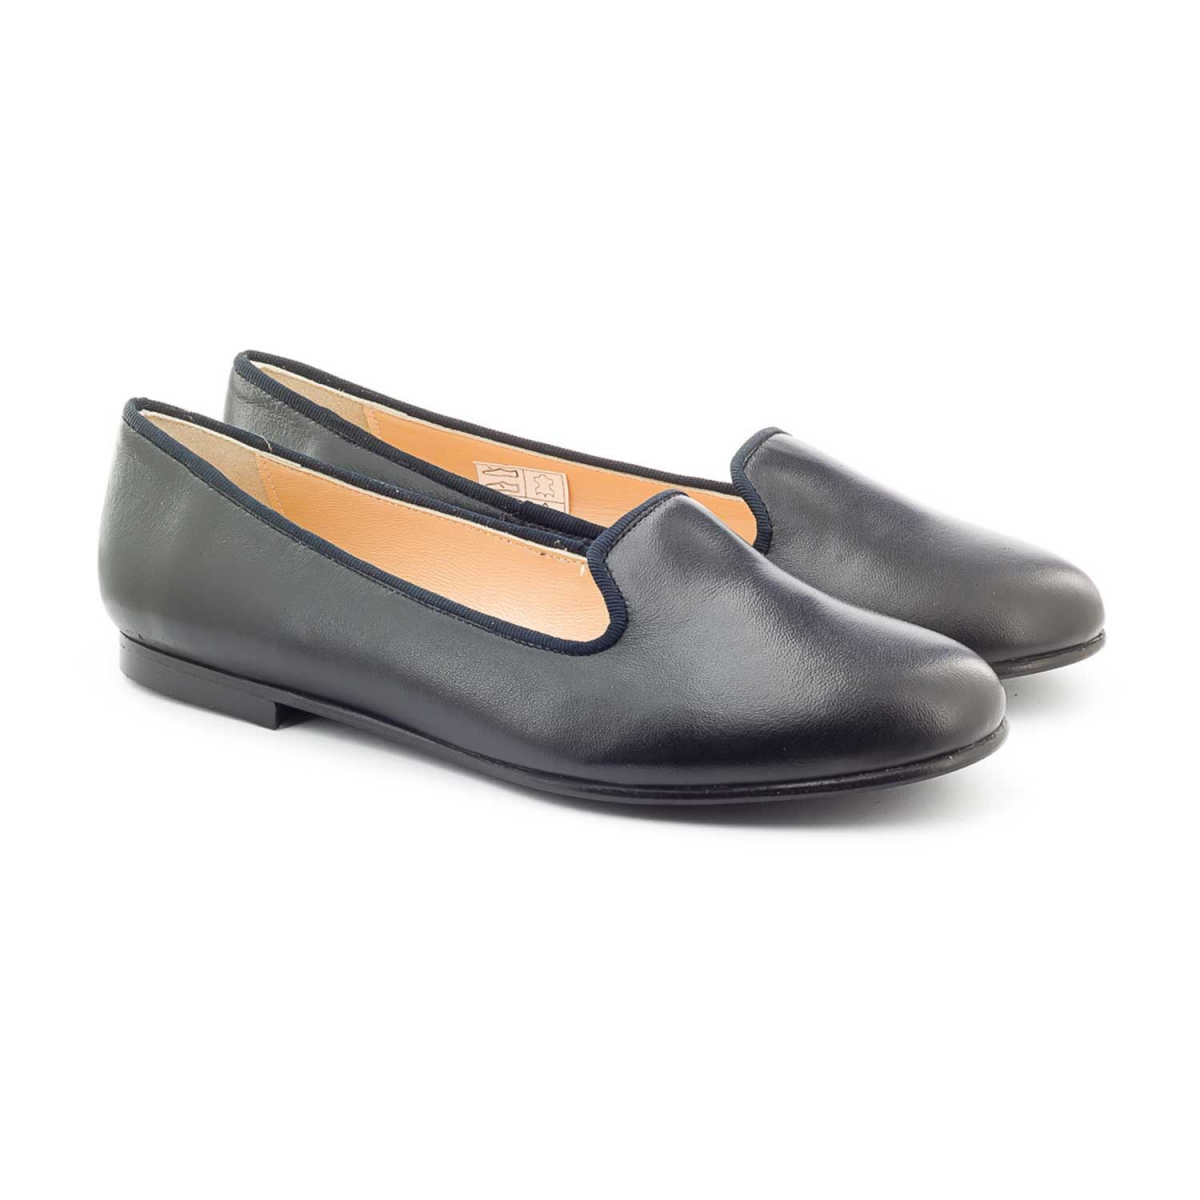 abf59eec9a421 ... chaussures fille